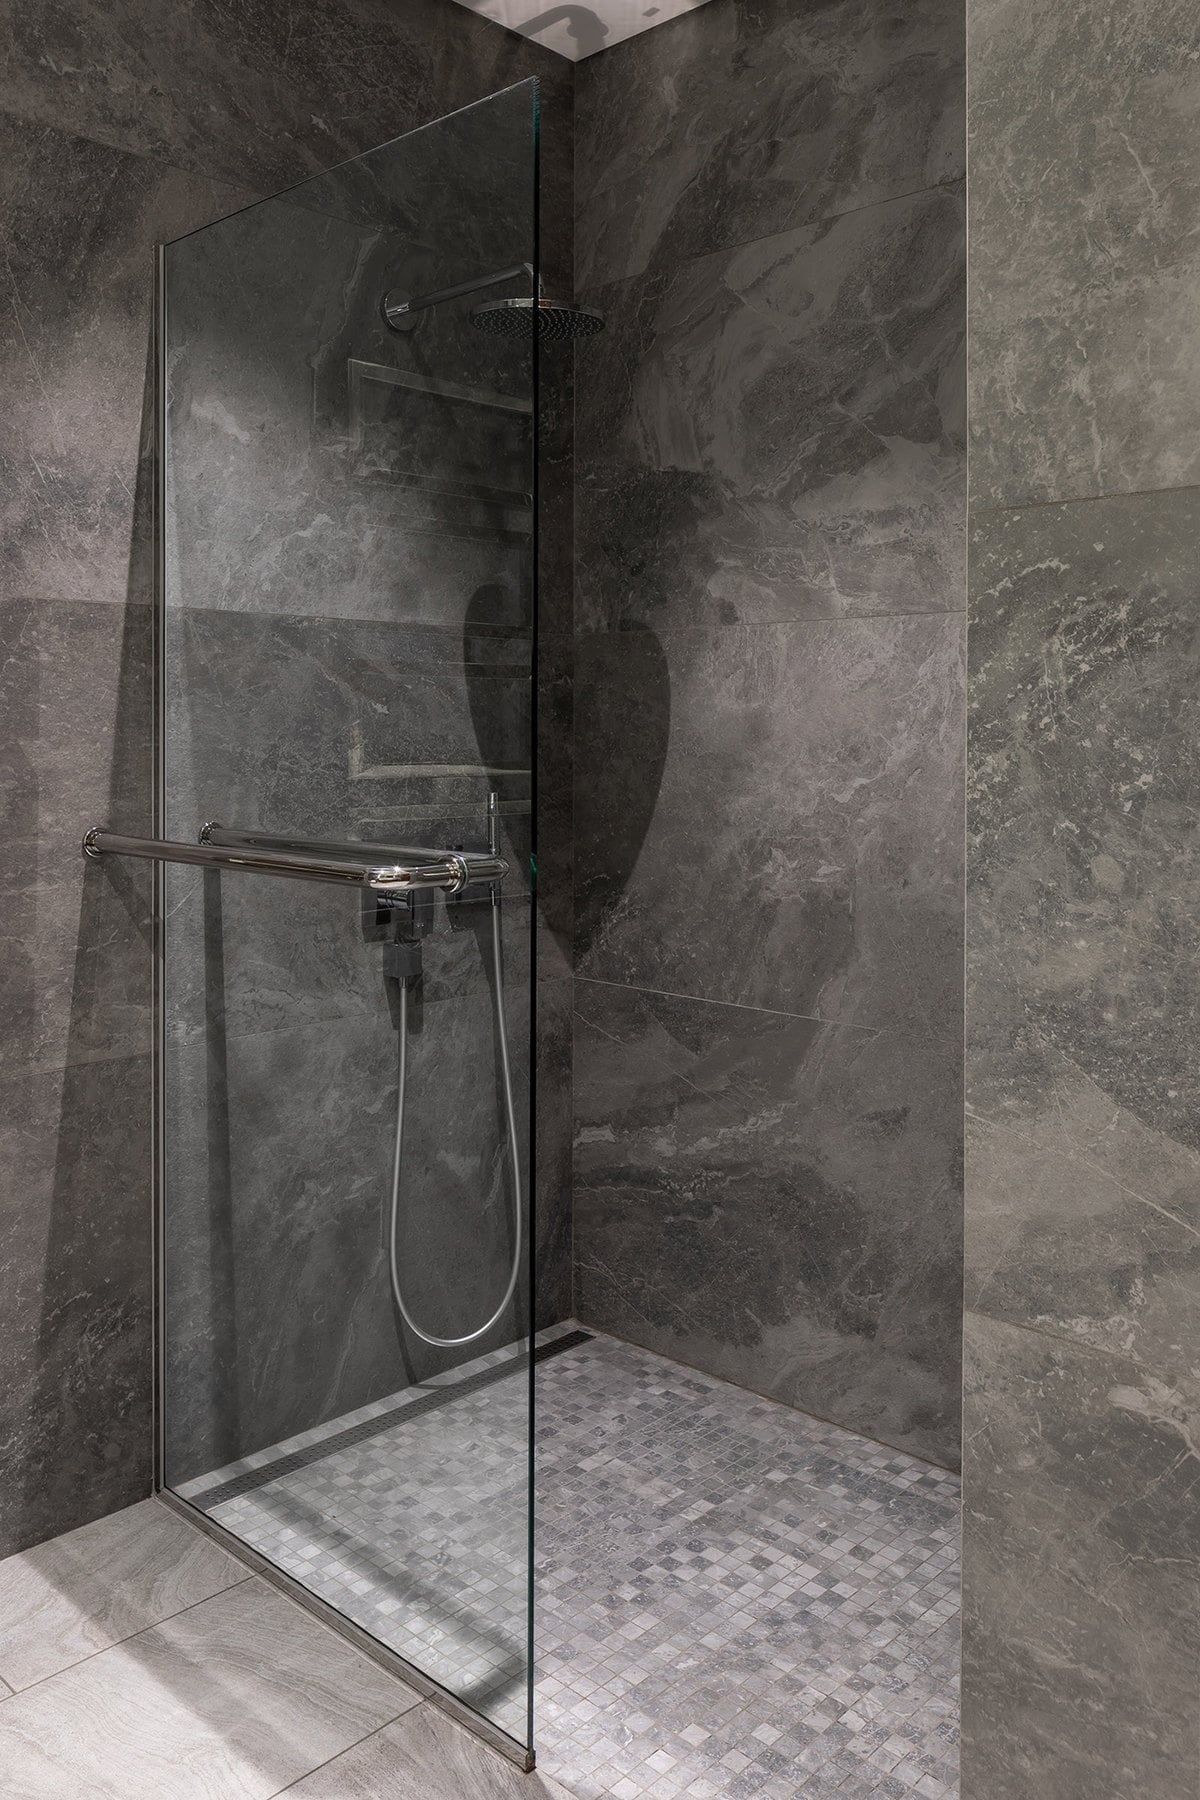 This is the glass-enclosed shower area with consistent gray tiles on its floor and walls.